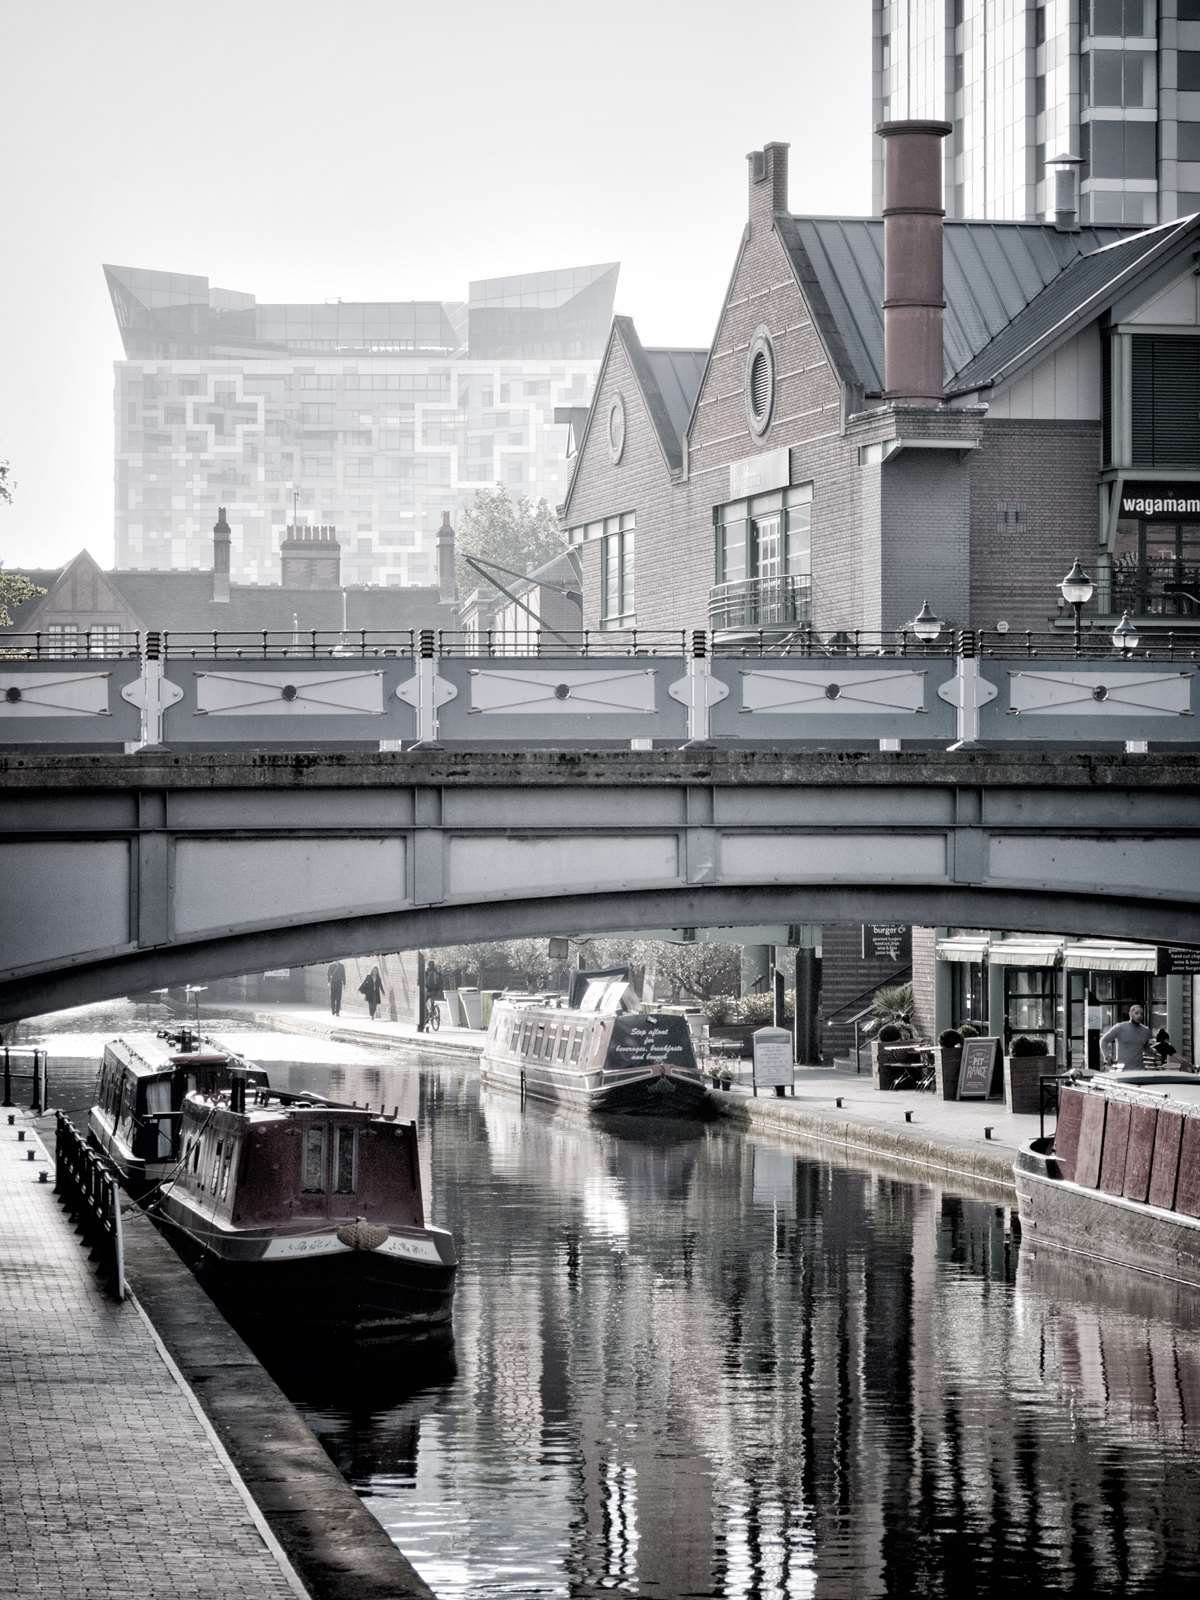 Looking along Brindley Place in Birmingham towards 'The Cube' with Brewmaster's Bridge in the foreground.